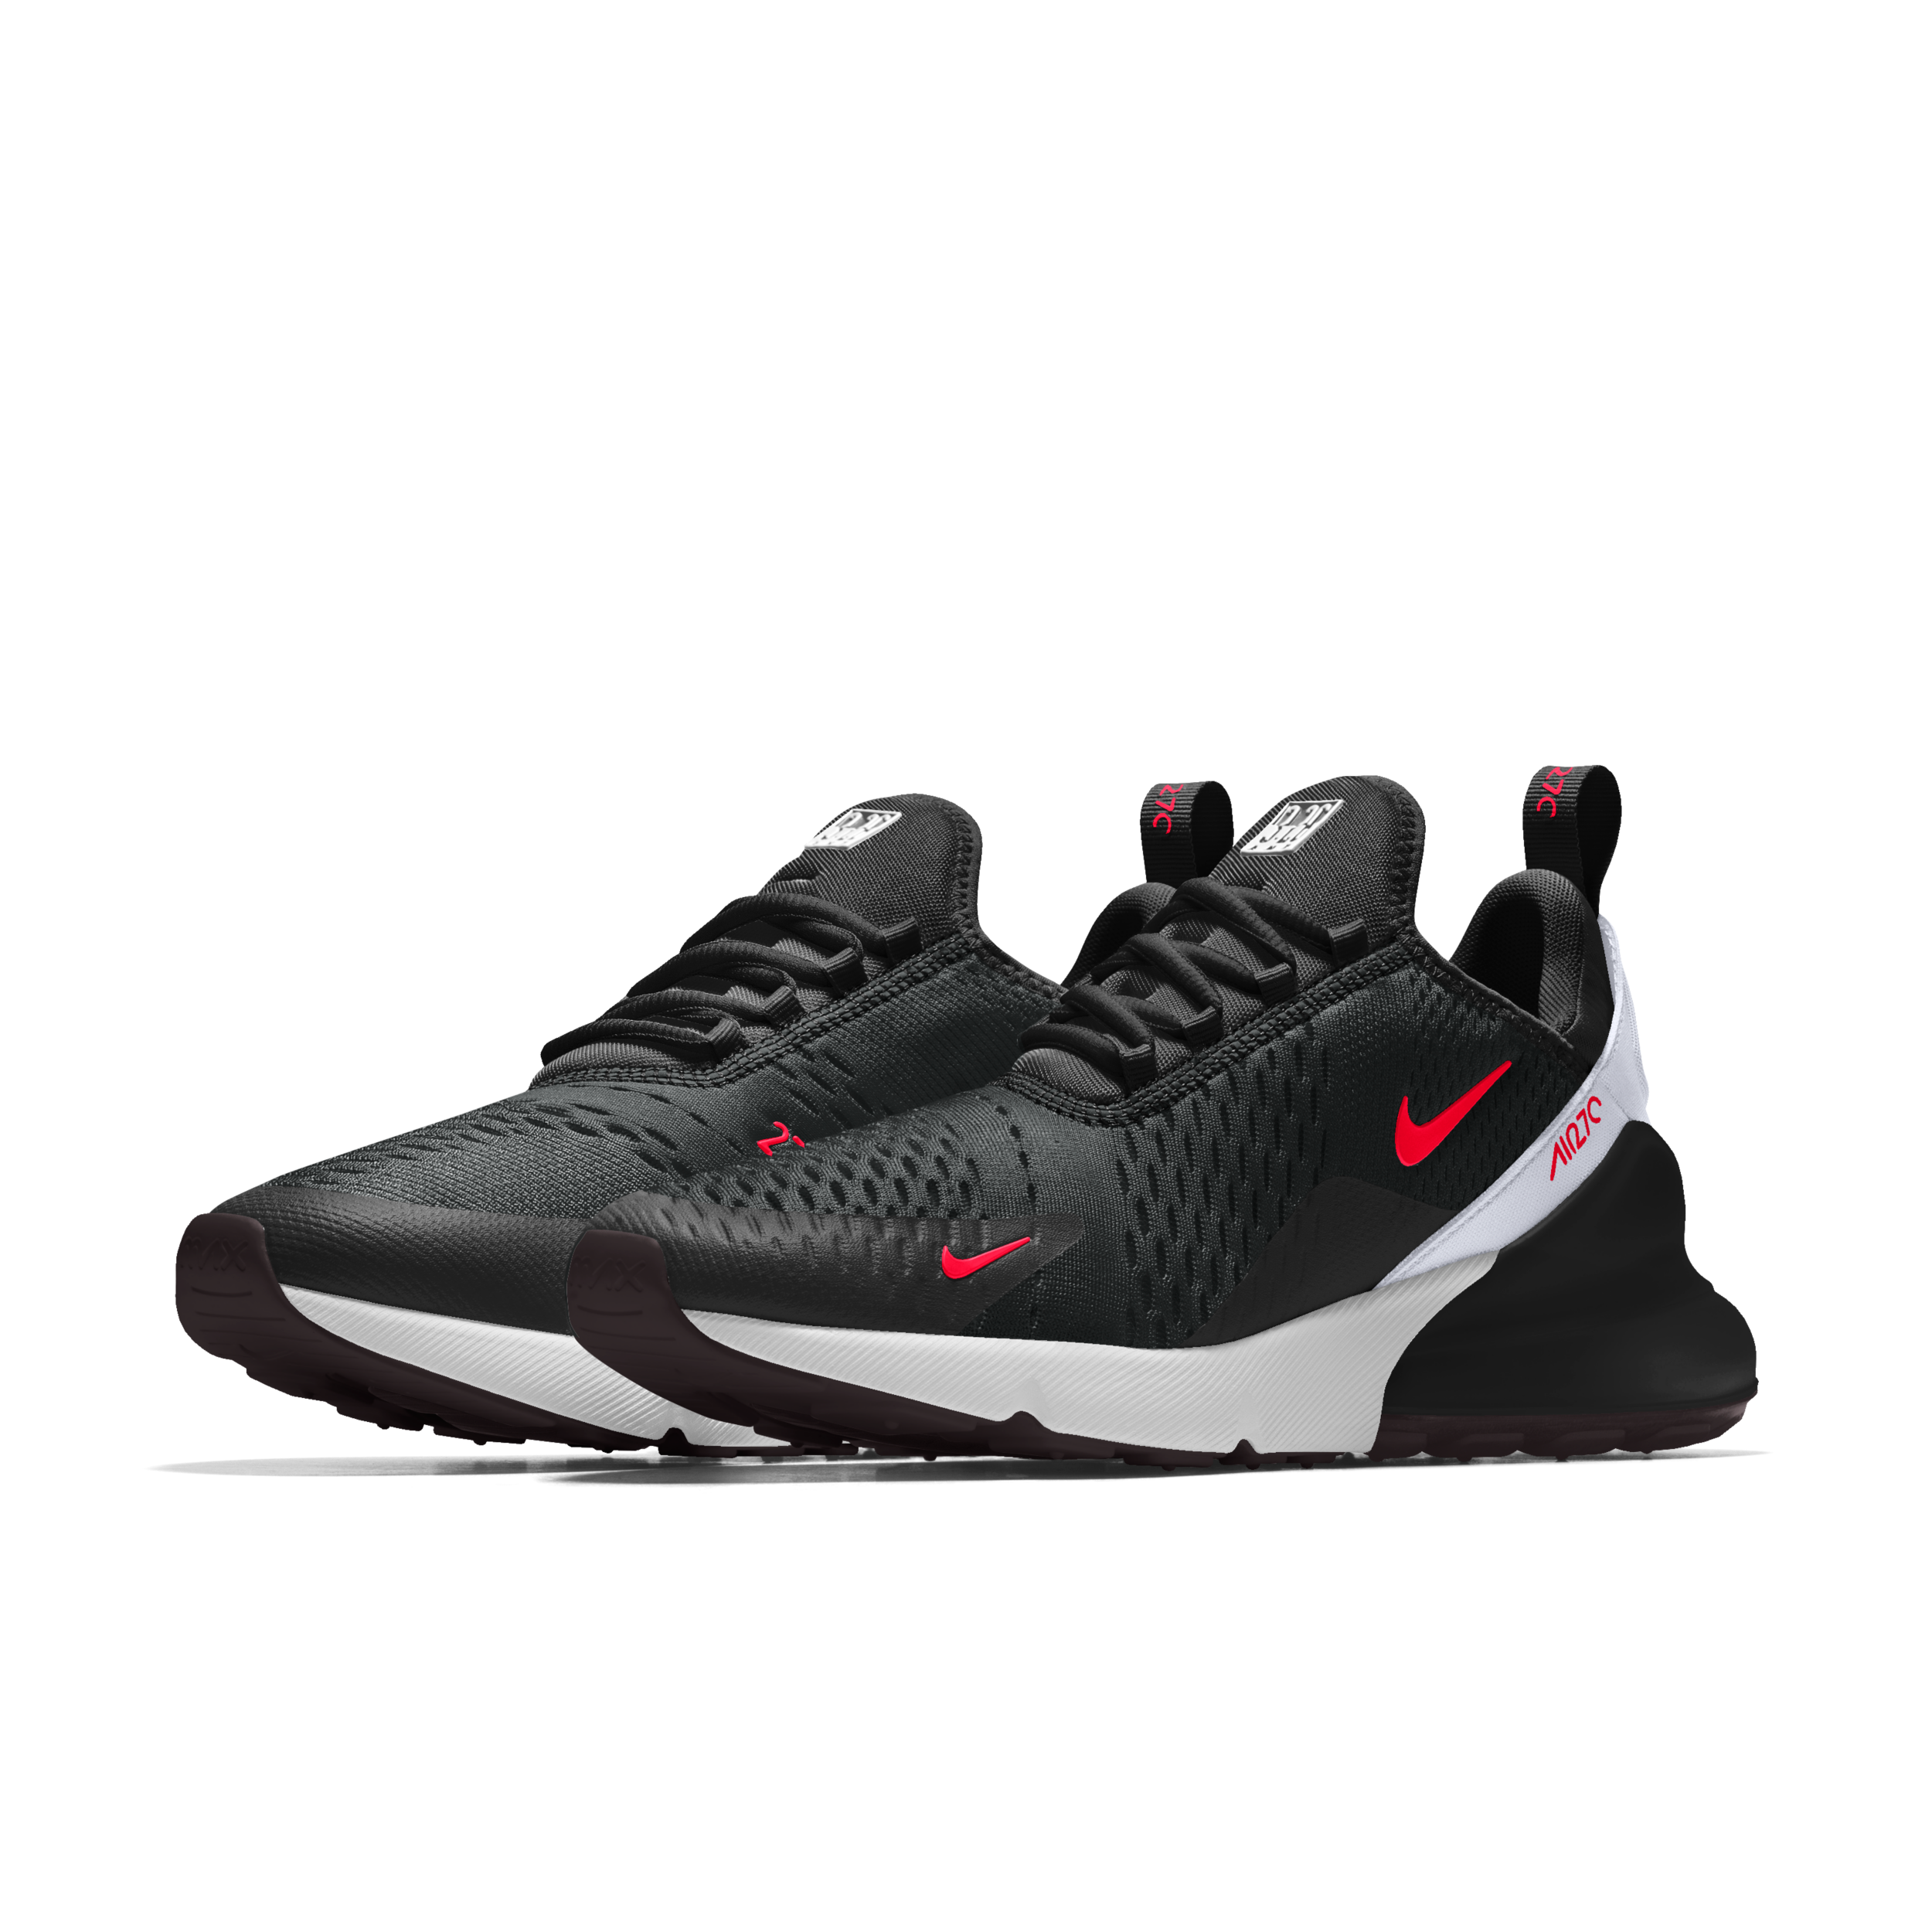 Nike Air Max 270 iD Schuh. DE | Nike free shoes